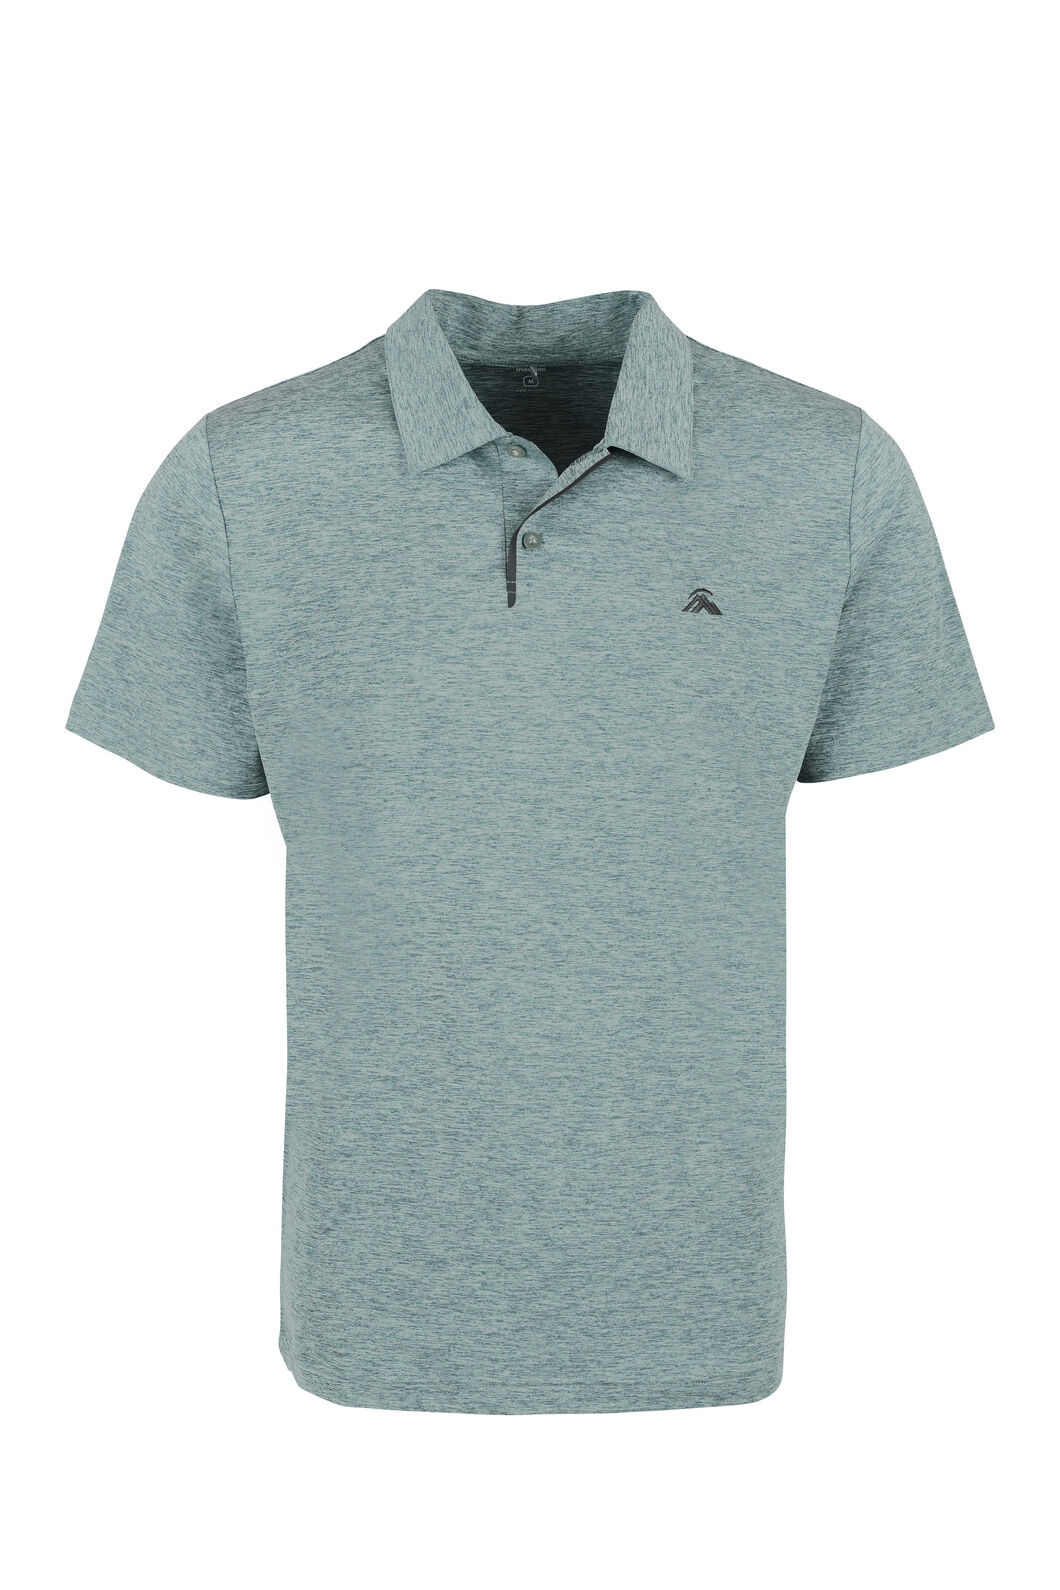 Macpac Xenicus Coolcore® Polo - Men's, Stormy Sea, hi-res